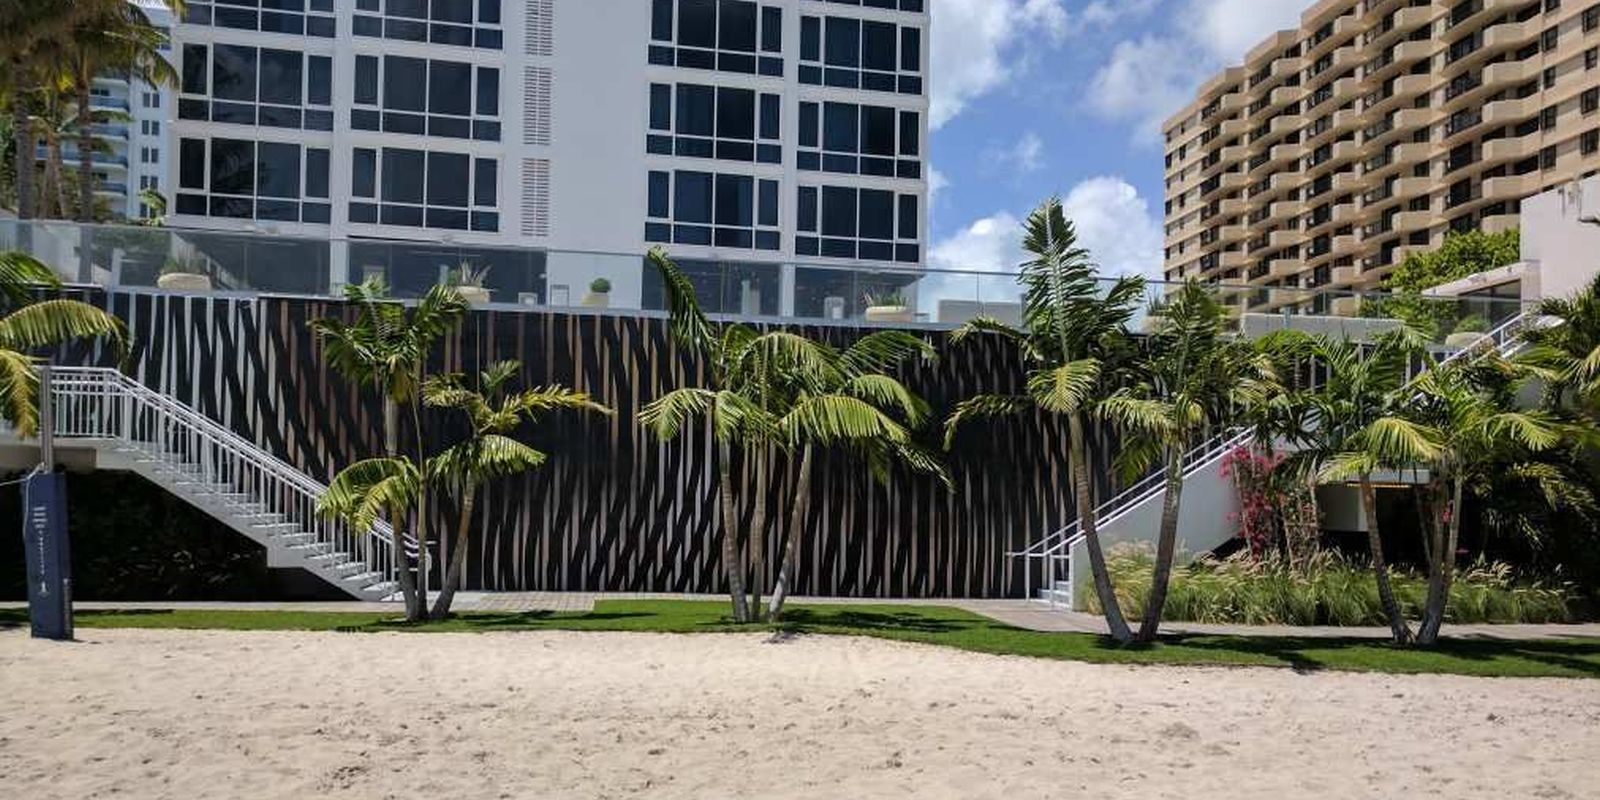 South Beach Mural Florida Art Basel